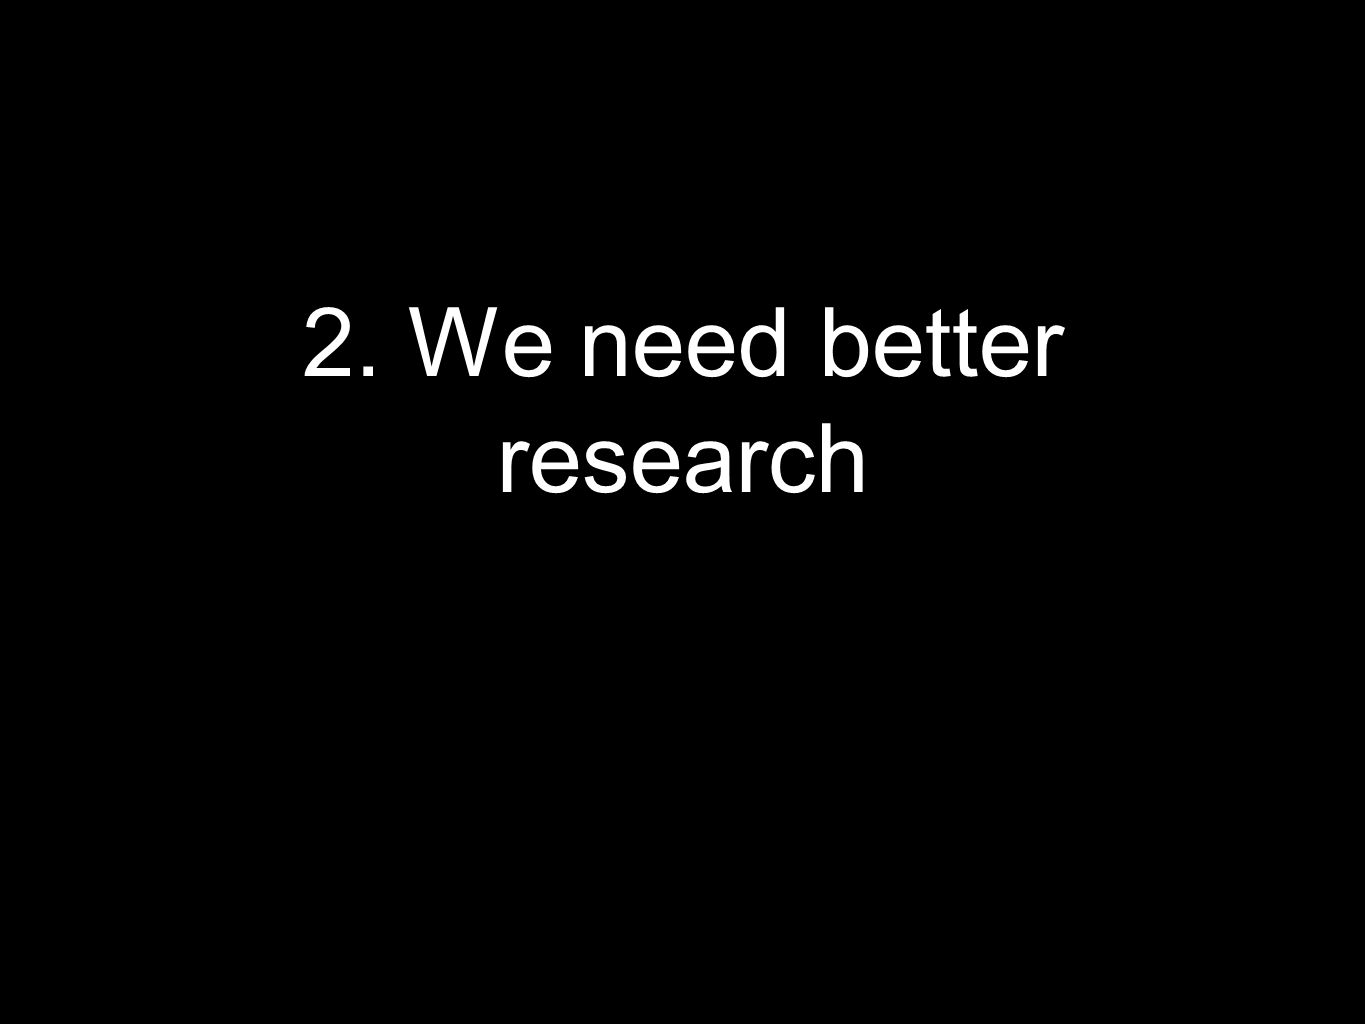 2. We need better research